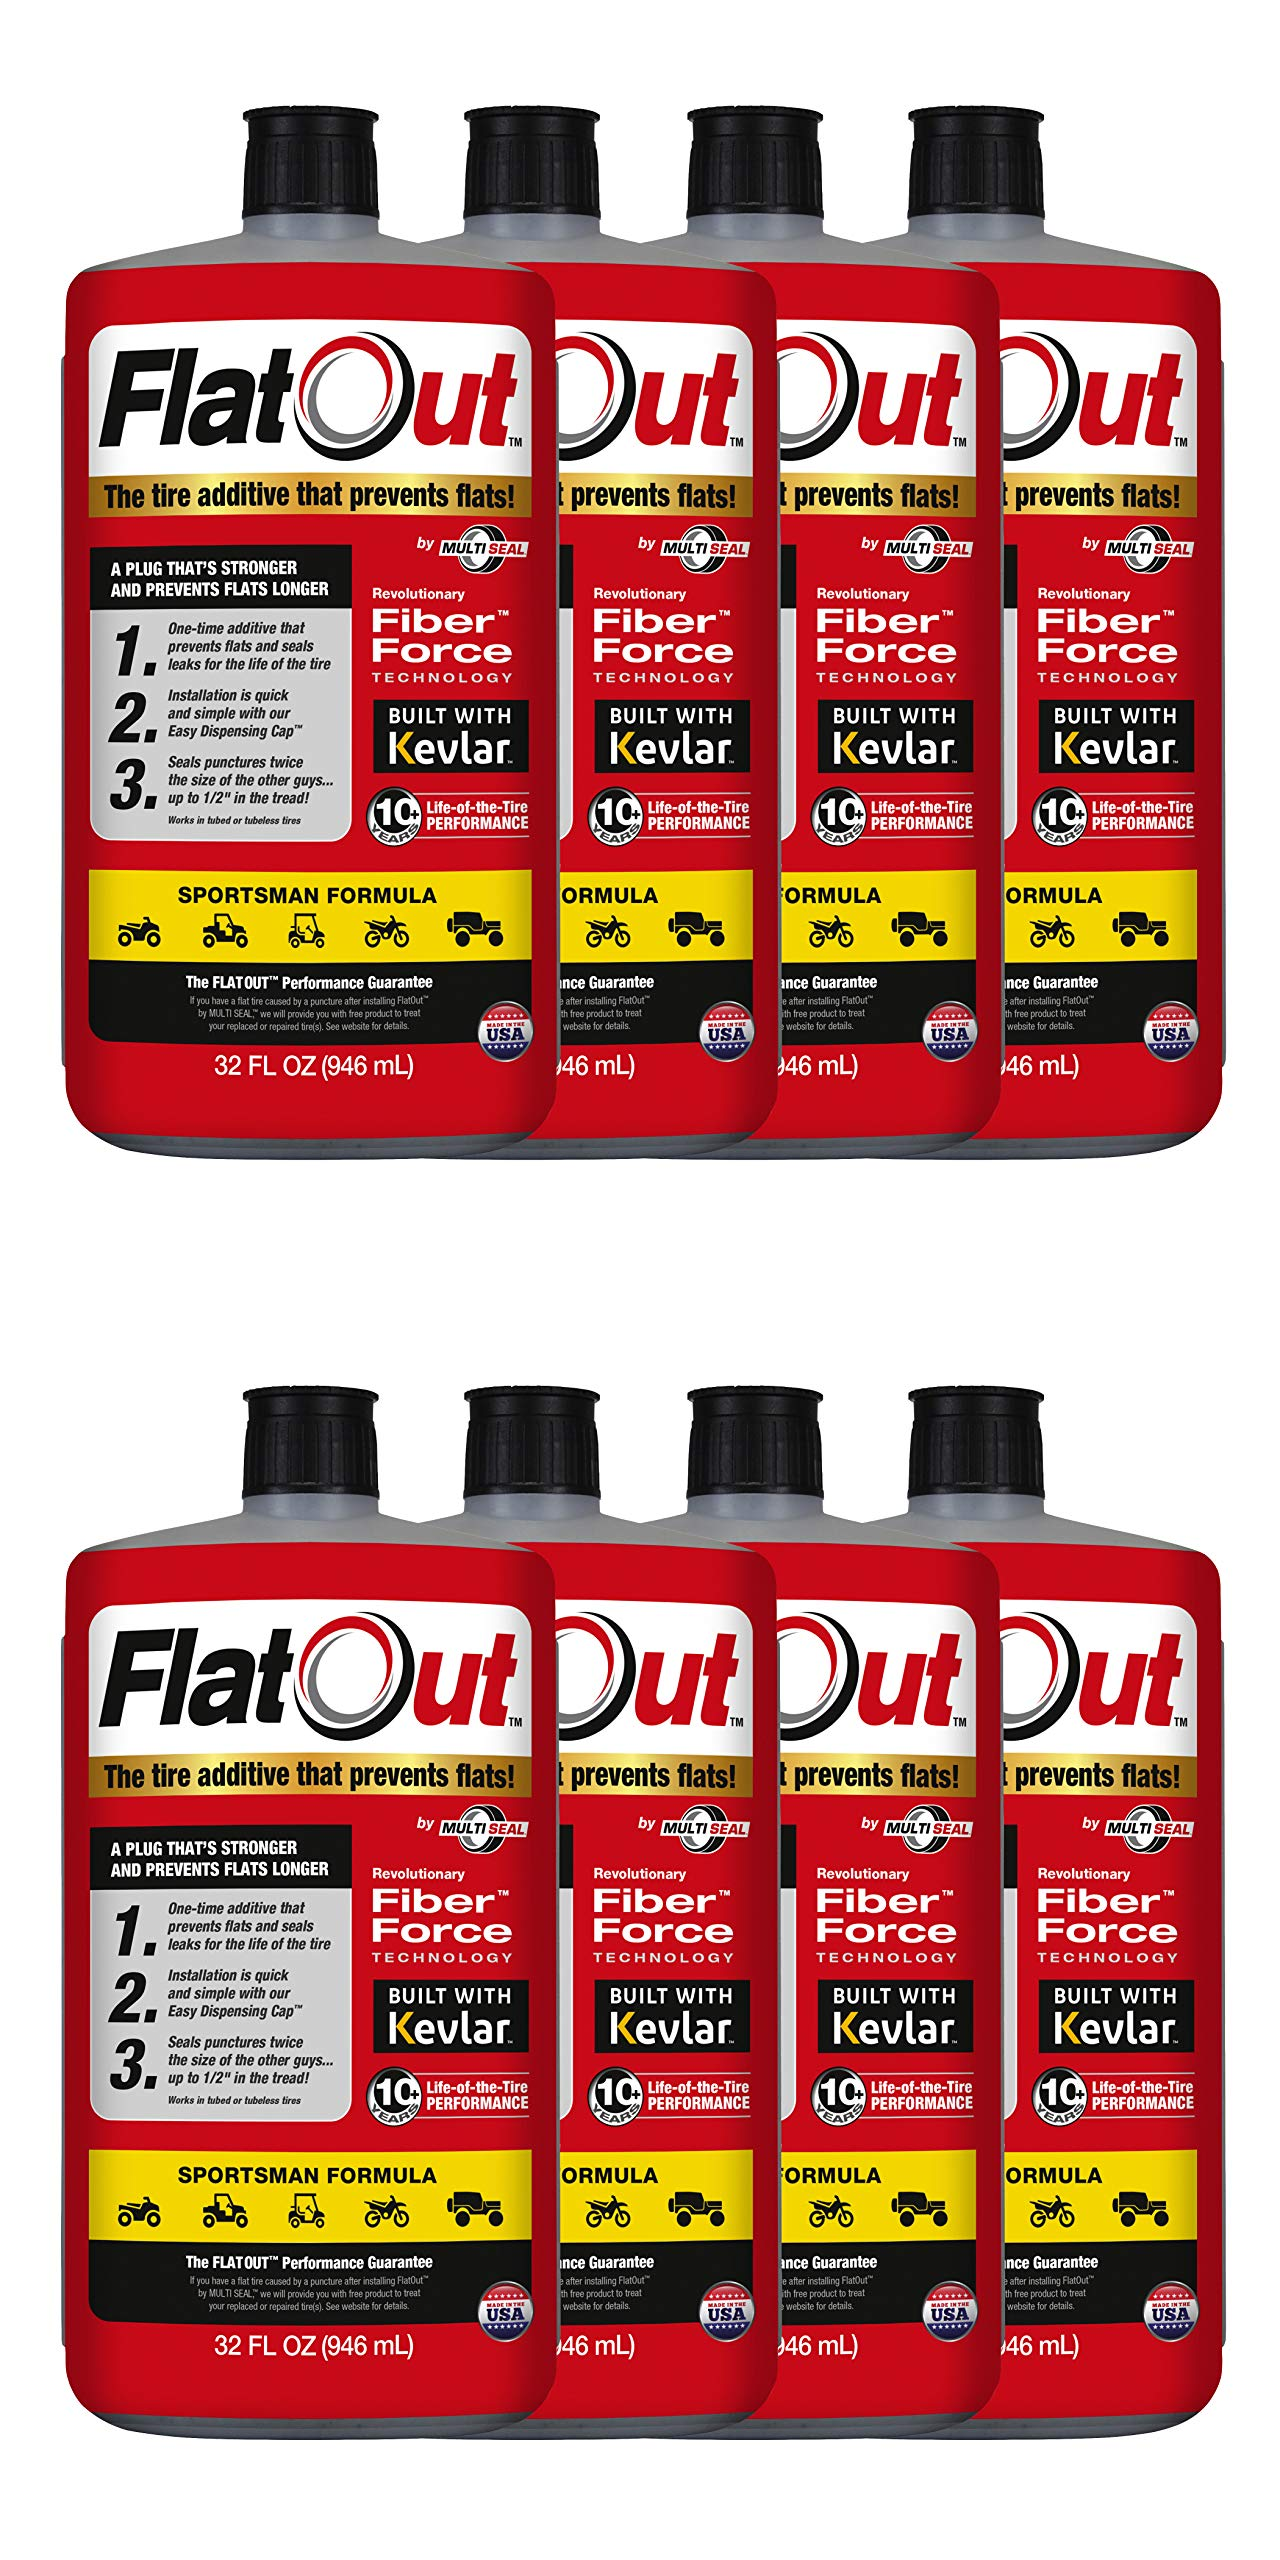 MULTI SEAL 20138 8-Pack (256 oz Sealant) FlatOut Tire Additive (Sportsman Formula), for ATVs, UTVs Sides, Golf Carts, Dirt Bikes, Off-Road-Only Jeeps and More, 8 Pack by MULTI SEAL